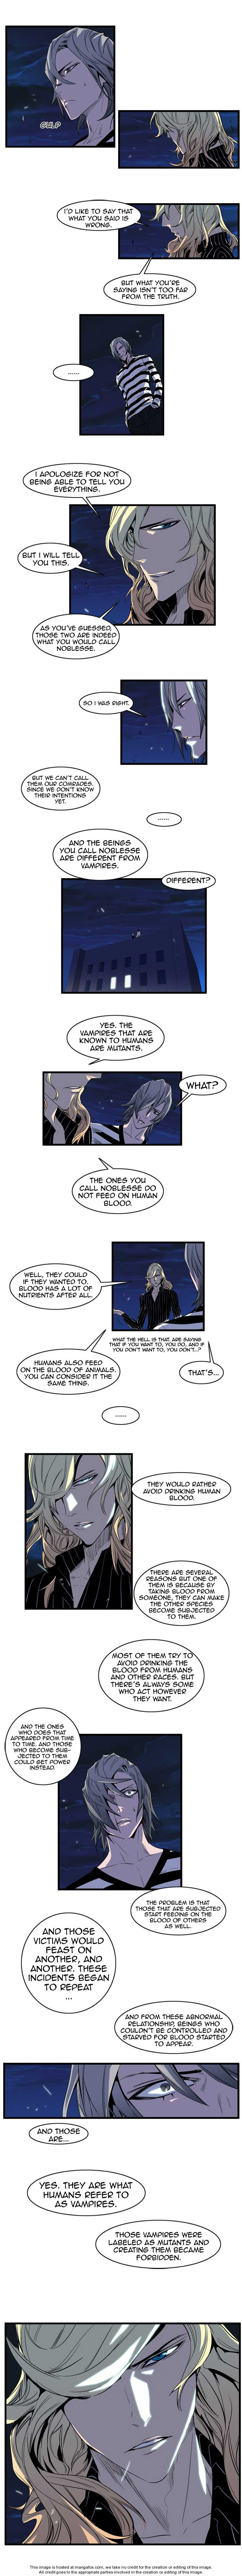 Noblesse 101 Page 3